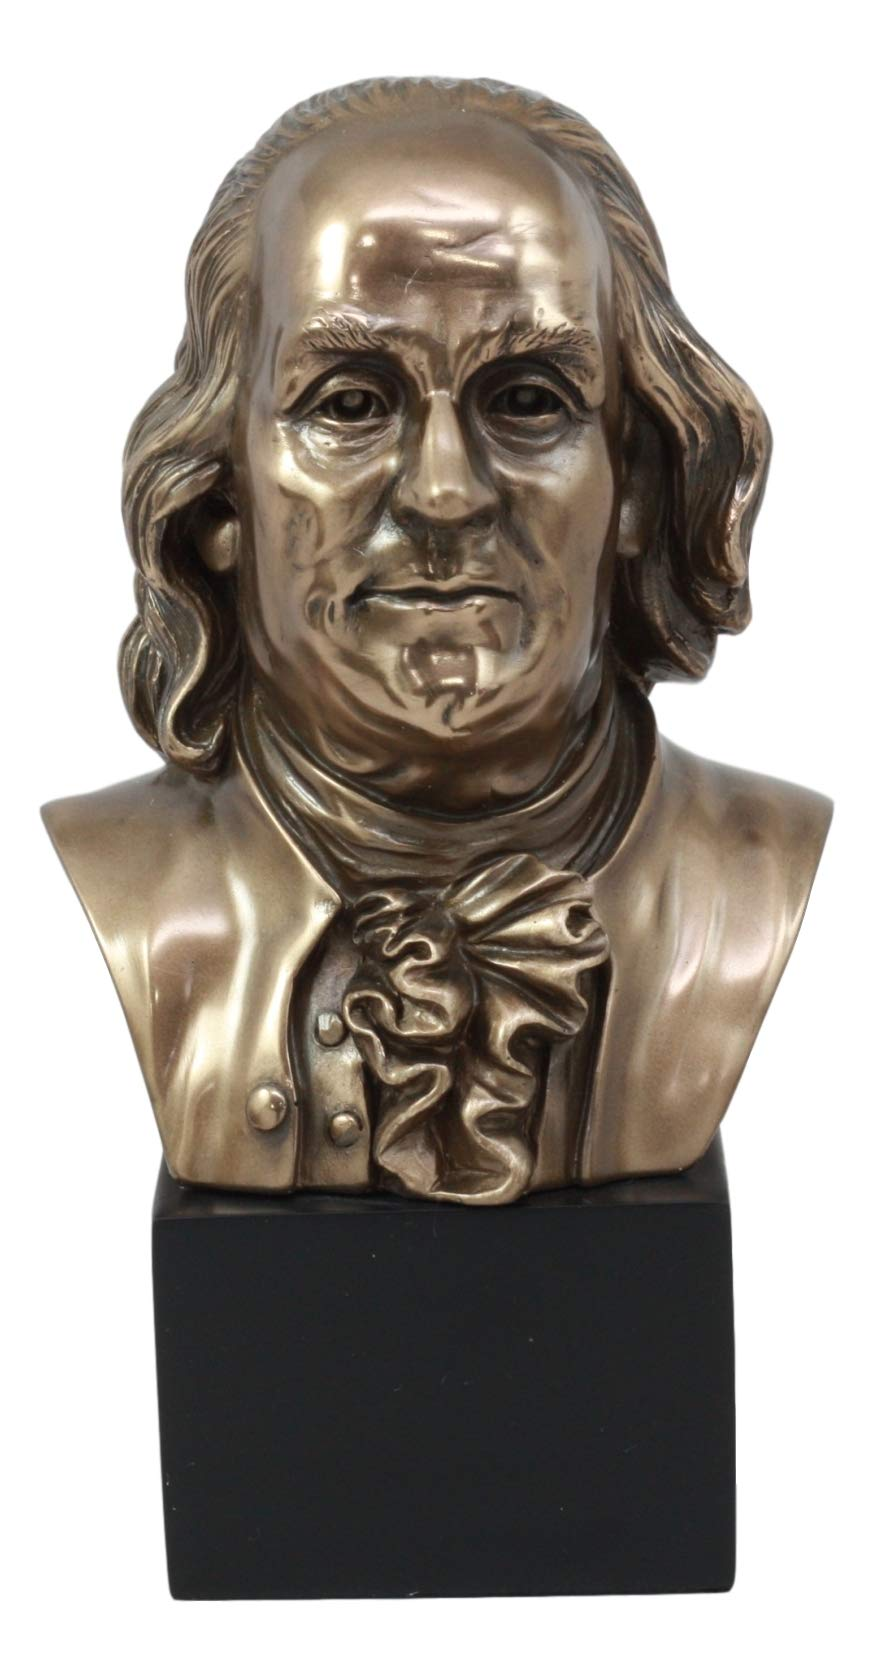 Ebros American Founding Father Benjamin Franklin Bust Statue 8.75'' Tall In Bronze Patina Finish Resin Figurine As United States Patriotic Historical Memorabilia Home Decor Realistic Lifelike Sculpture by Ebros Gift